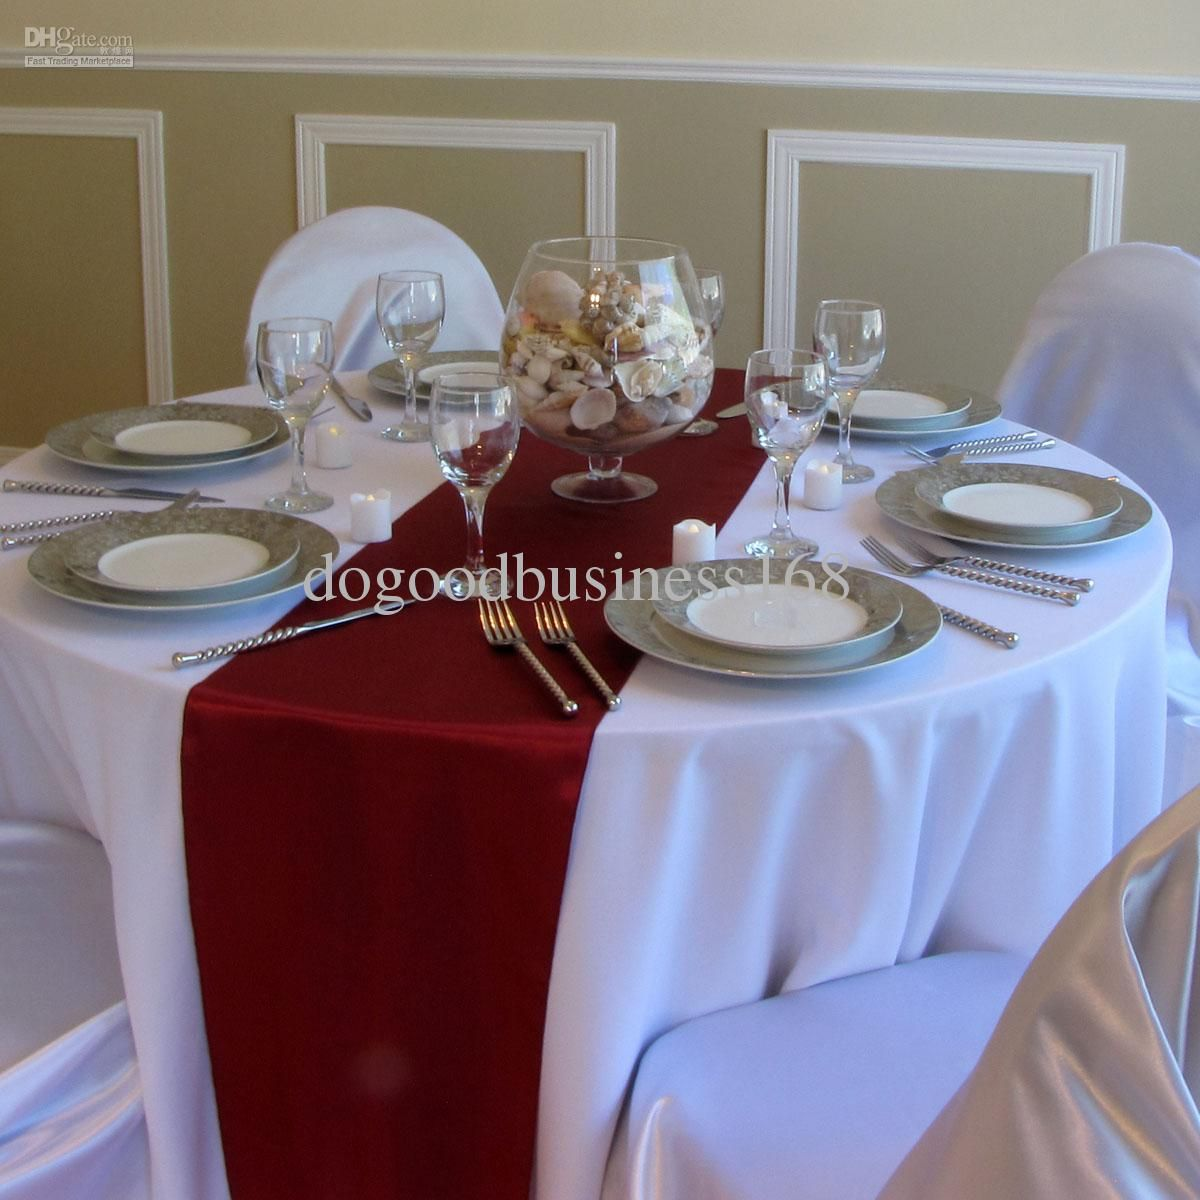 25pcs burgundy satin table runners for weddingbanquets banquet wholesale table runner buy burgundy satin table runners for weddingbanquets 217 junglespirit Images